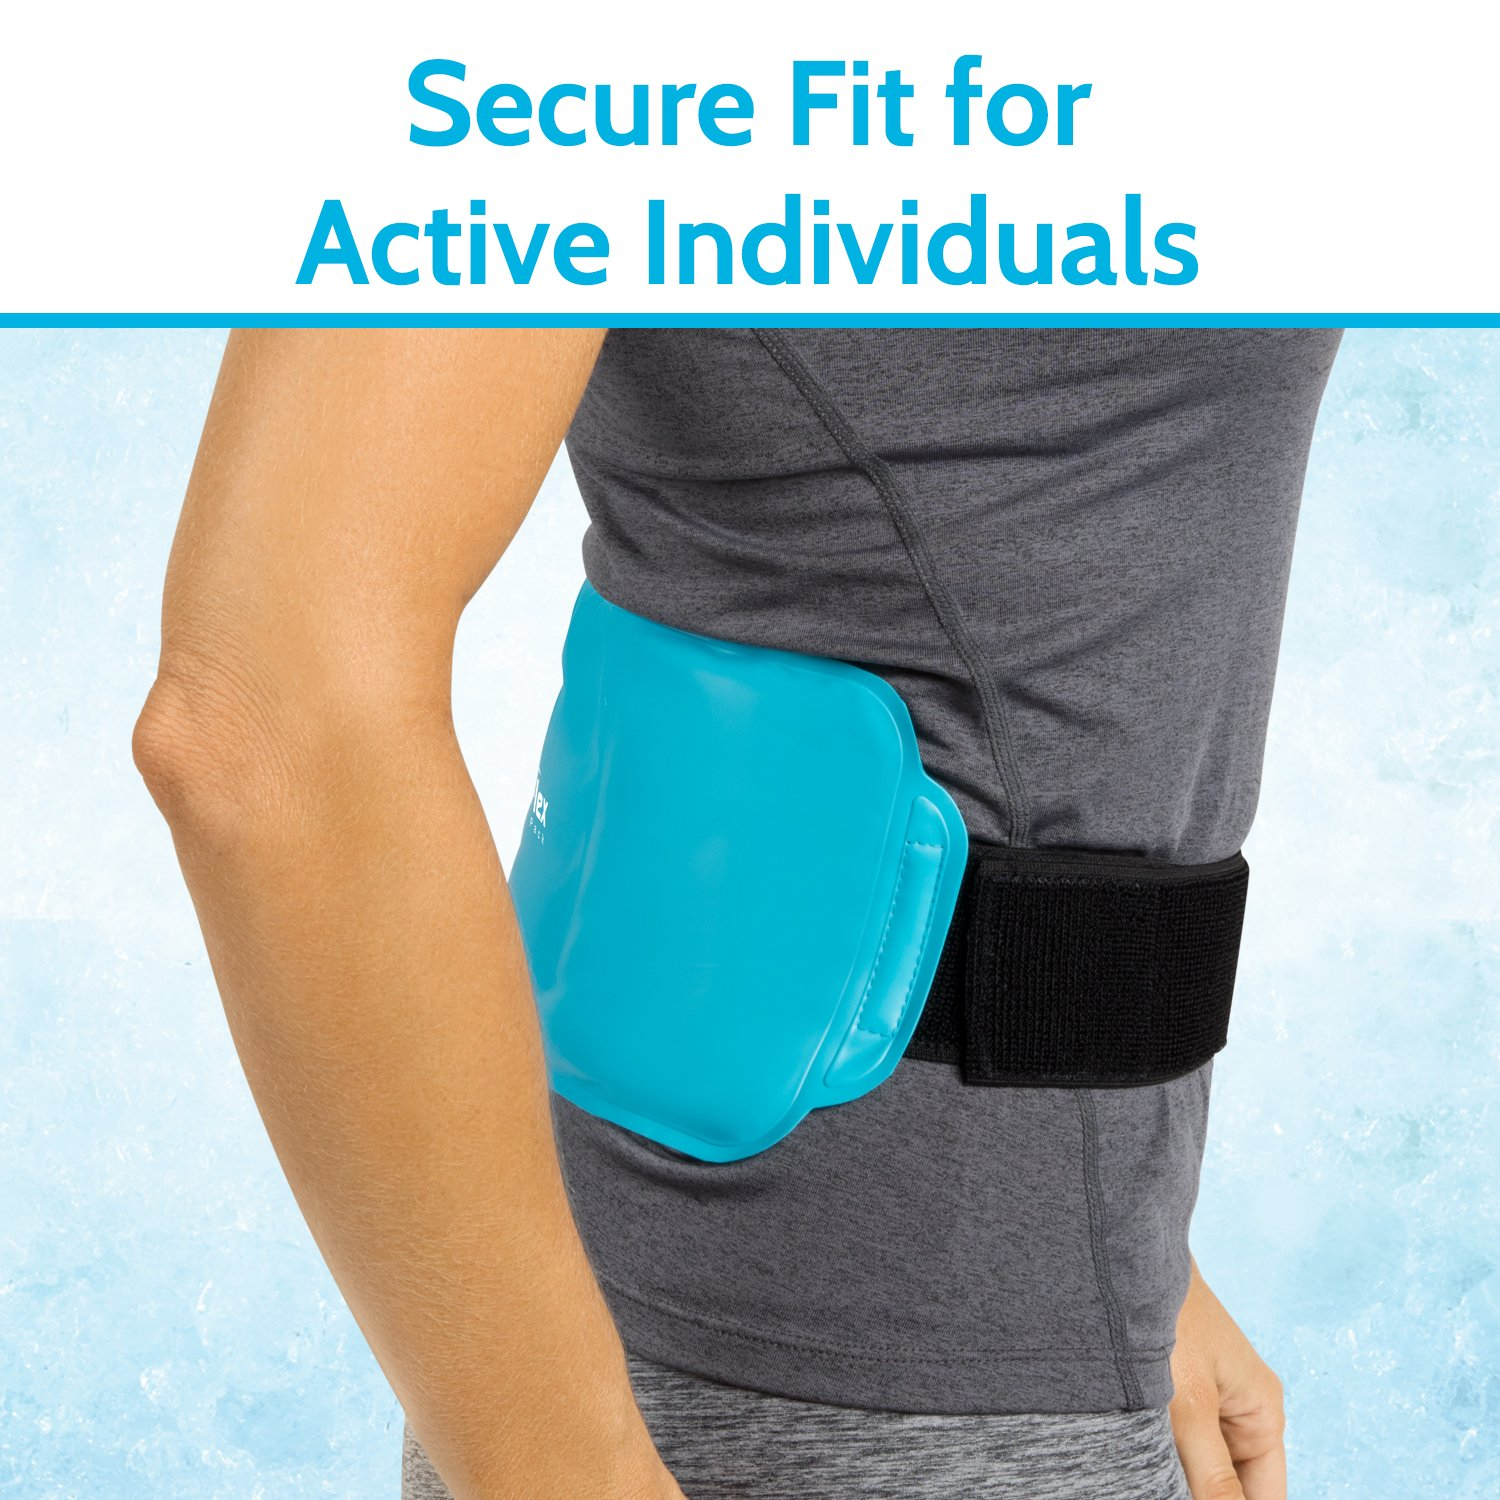 Arctic Flex Hot Cold Therapy Wrap - Reusable Gel Ice and Heat Compress Pack with Strap for Muscle, Injuries, Back, Neck Aches, Knee, Ankle, Calves, Elbow Pain Relief - Microwaveable Blue Pad, Flexible by Arctic Flex (Image #6)